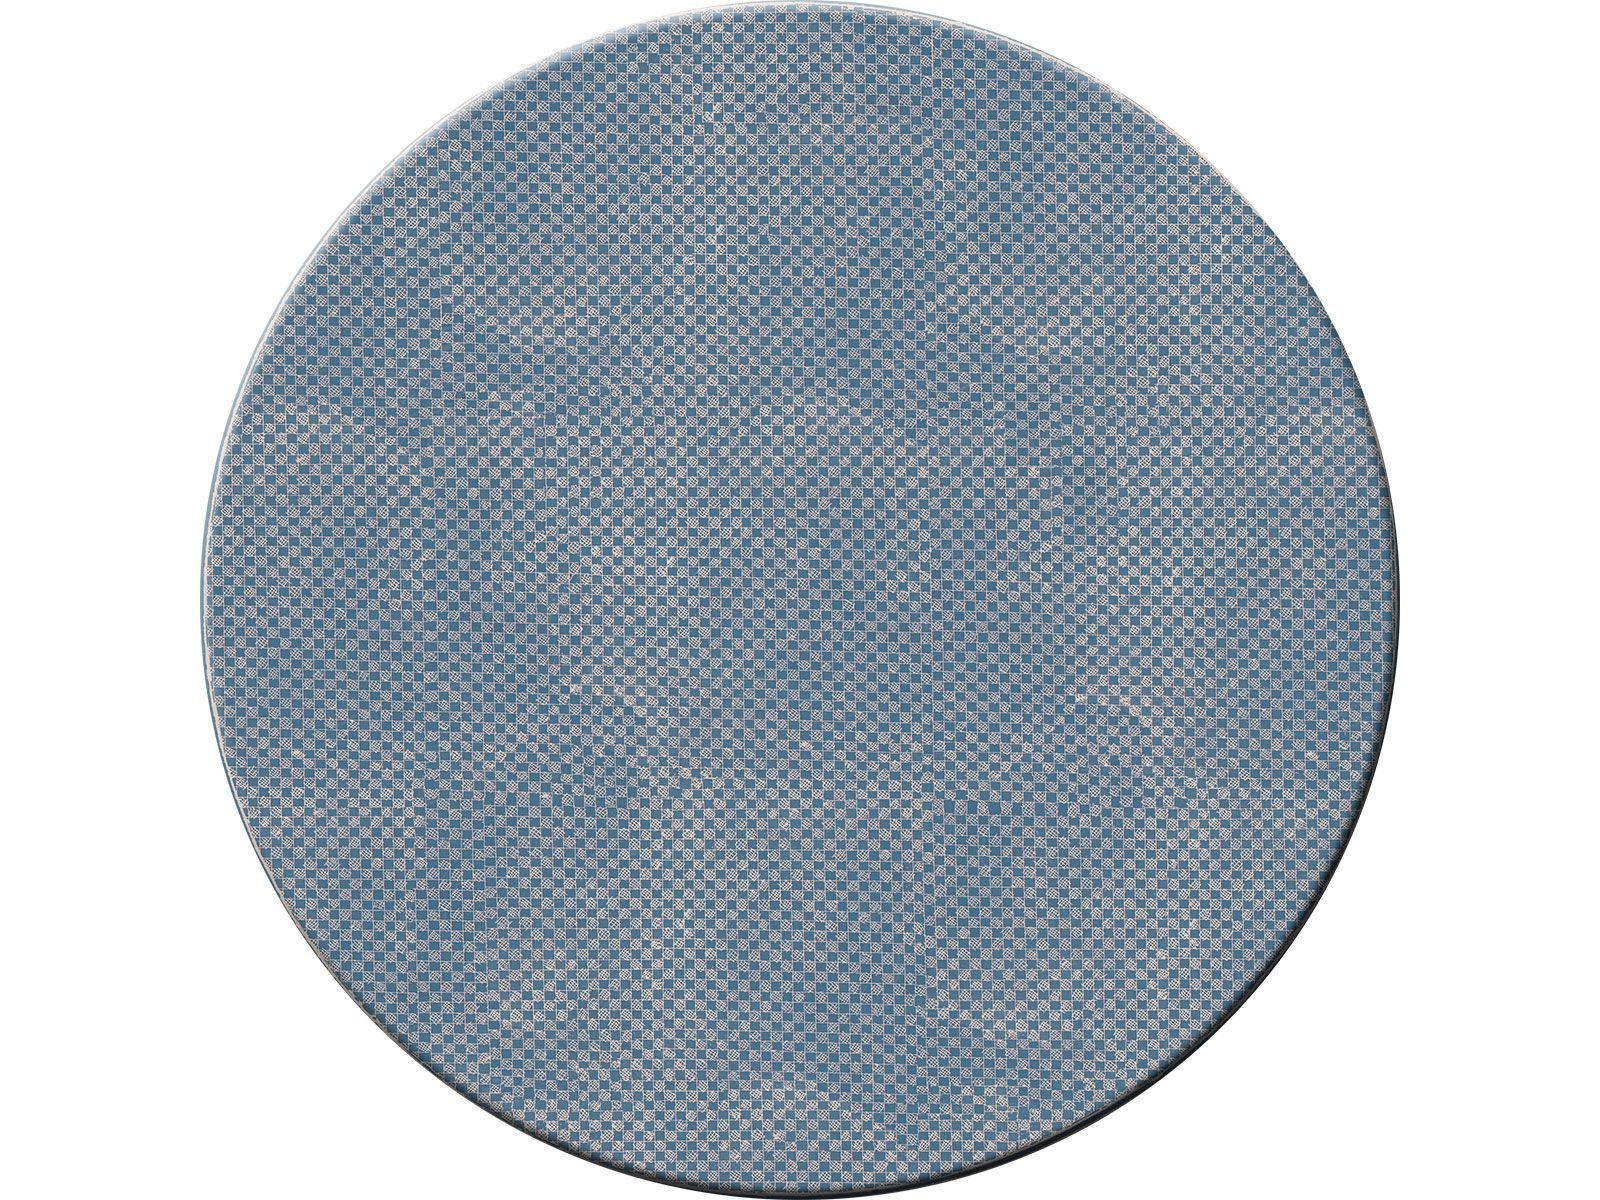 Betel Blue Round Placemats Are Hardboard Cork Backed Hard Placemats Modern Durable Heat Resistance Easy Clean Desig Modern Placemats Placemats Hardboard